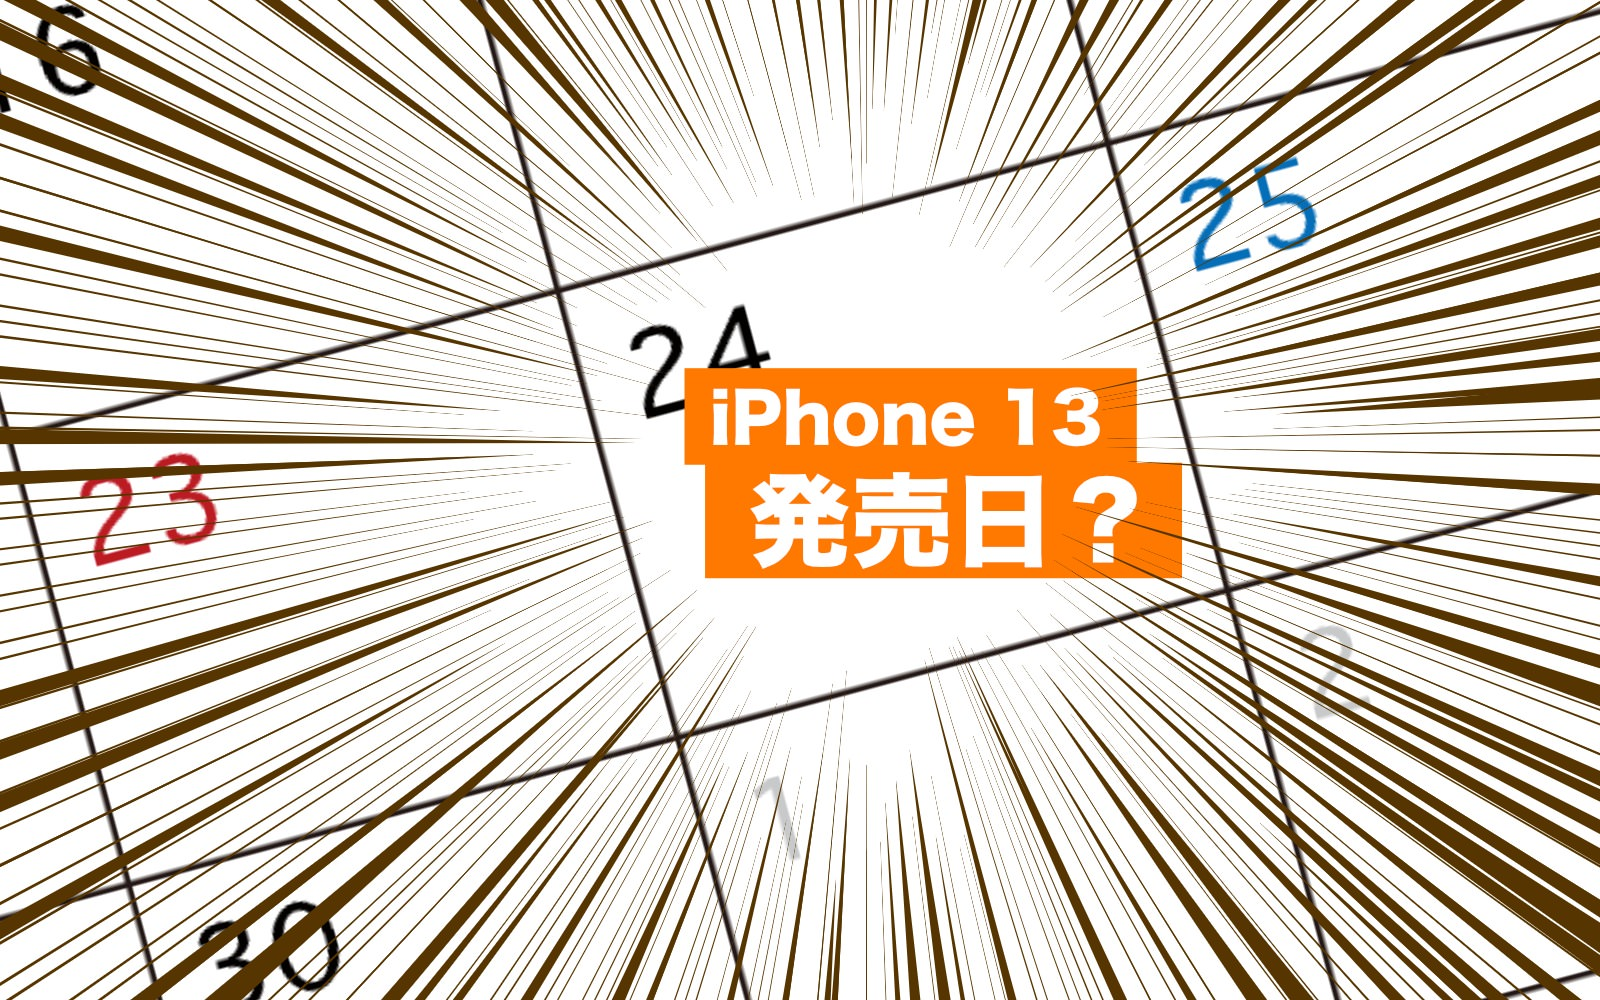 IPhone13 possible launch date